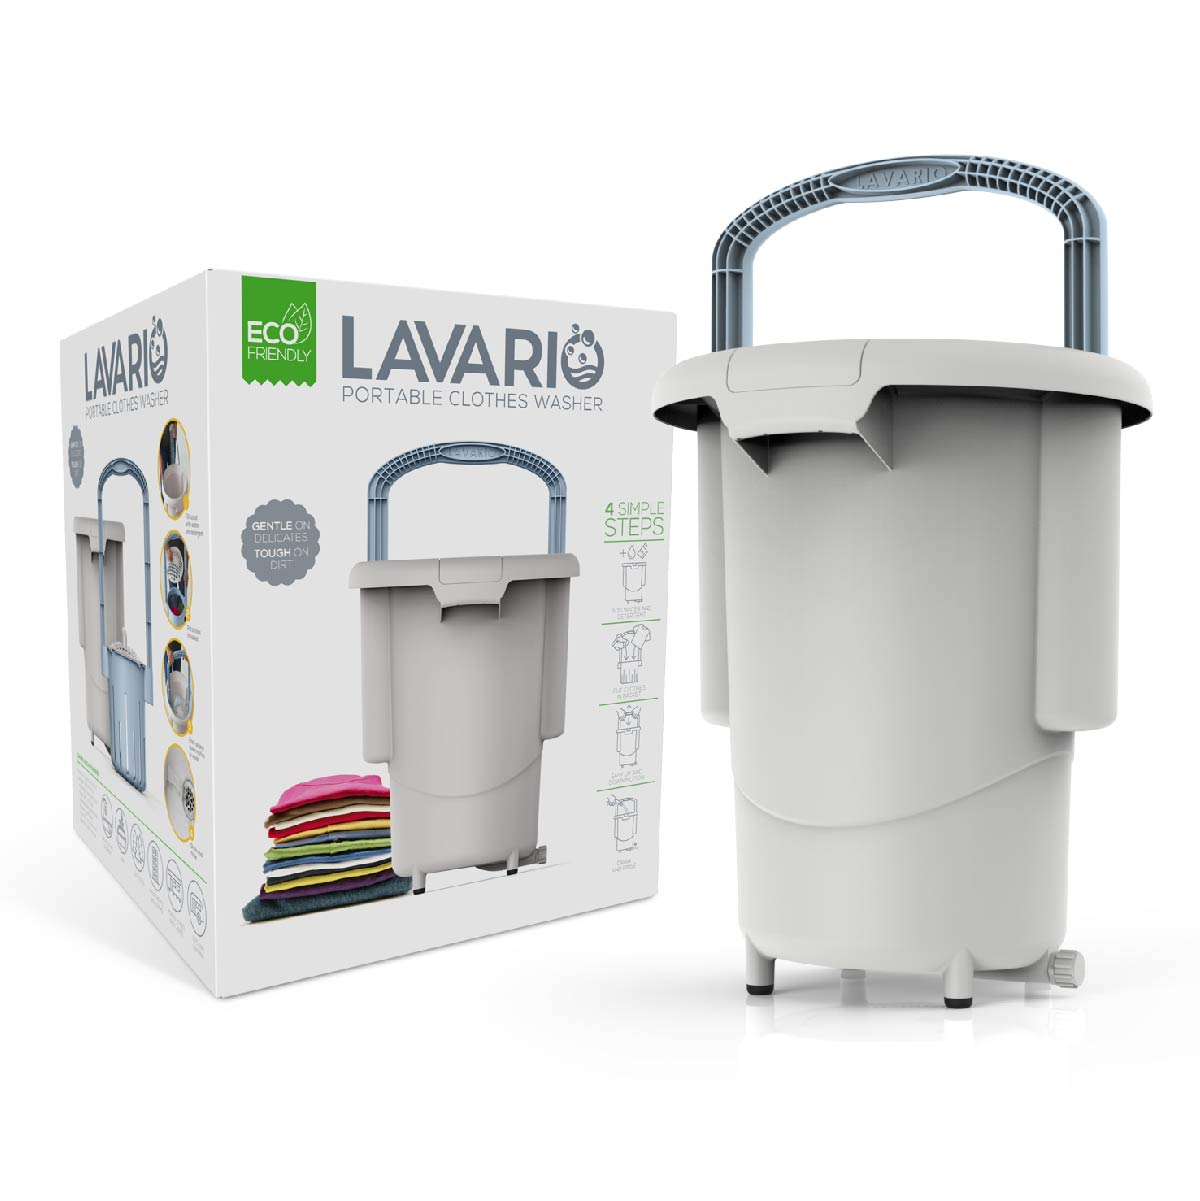 Lavario: The new, environmentally friendly way to do laundry.